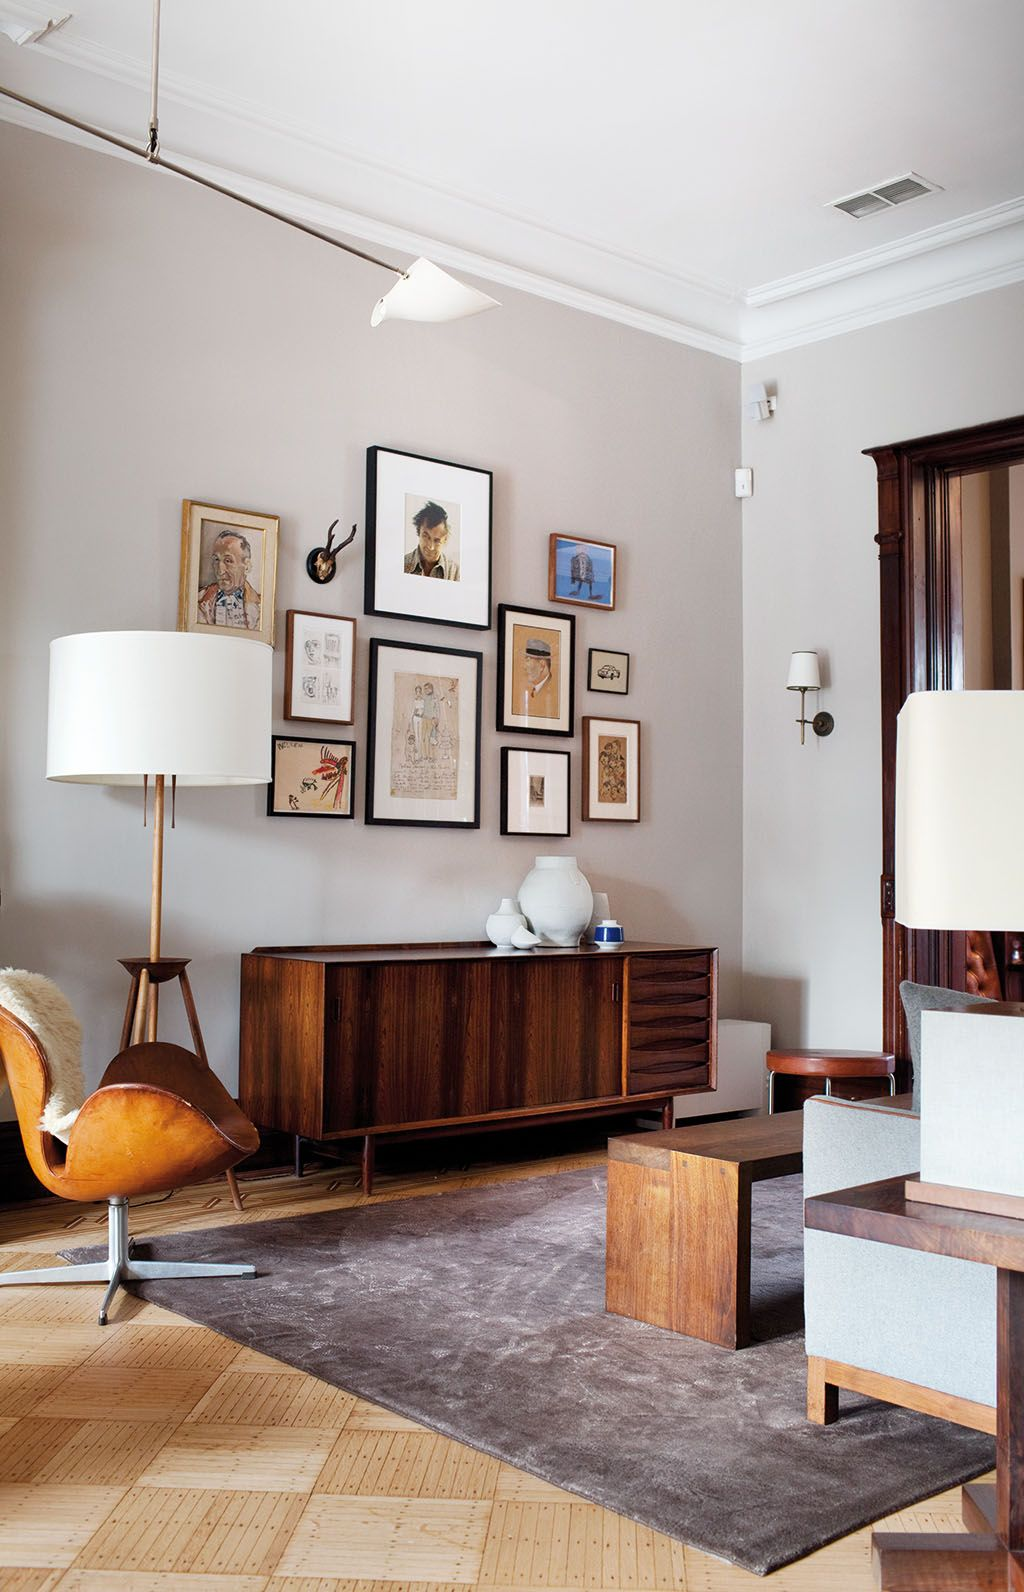 Decor Trends With Images Mid Century Modern Living Room Mid